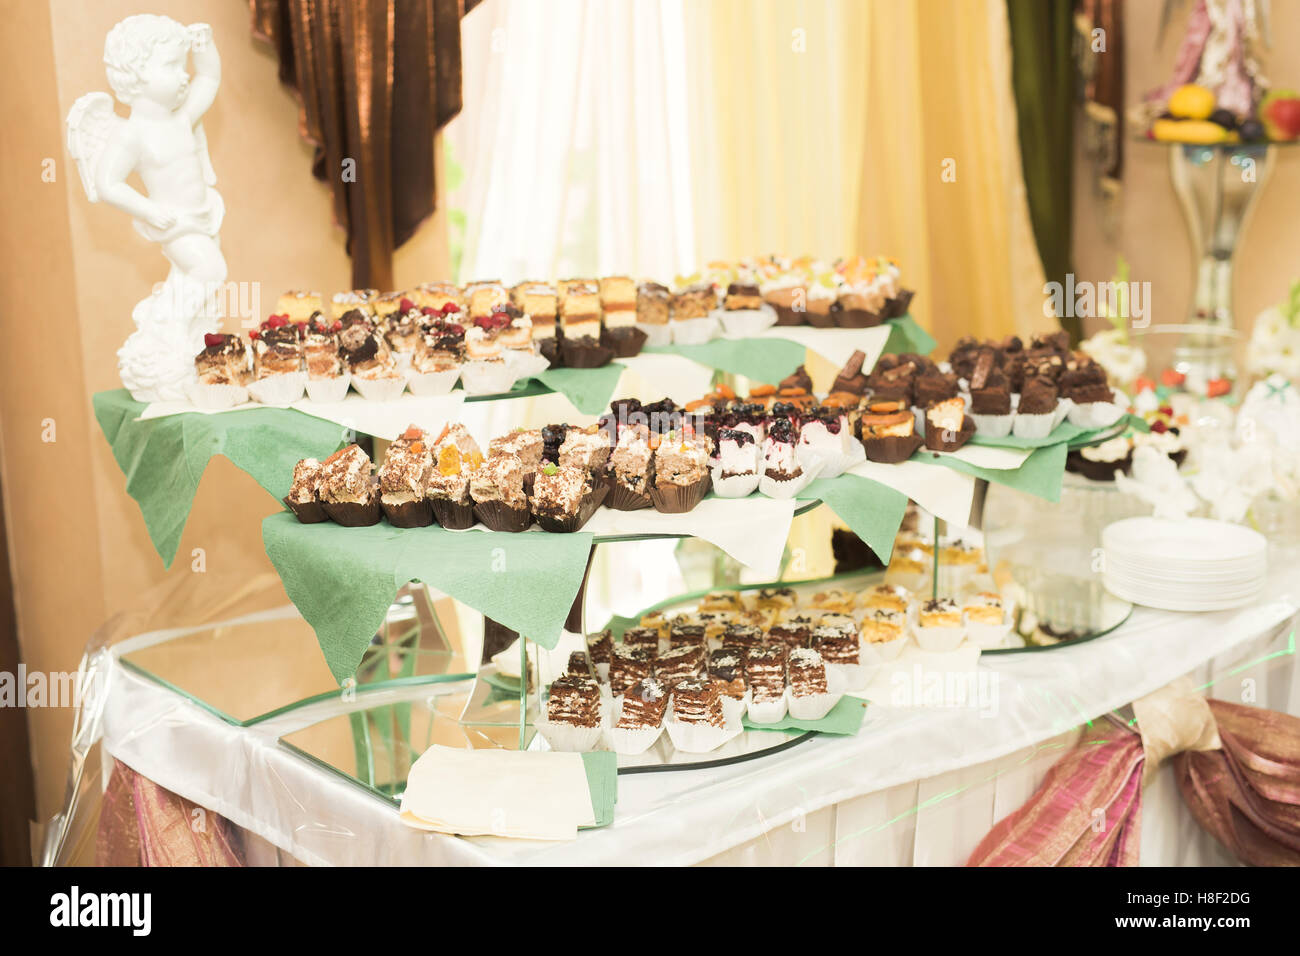 Buffet with a variety of delicious sweets, food ideas, celebration ...